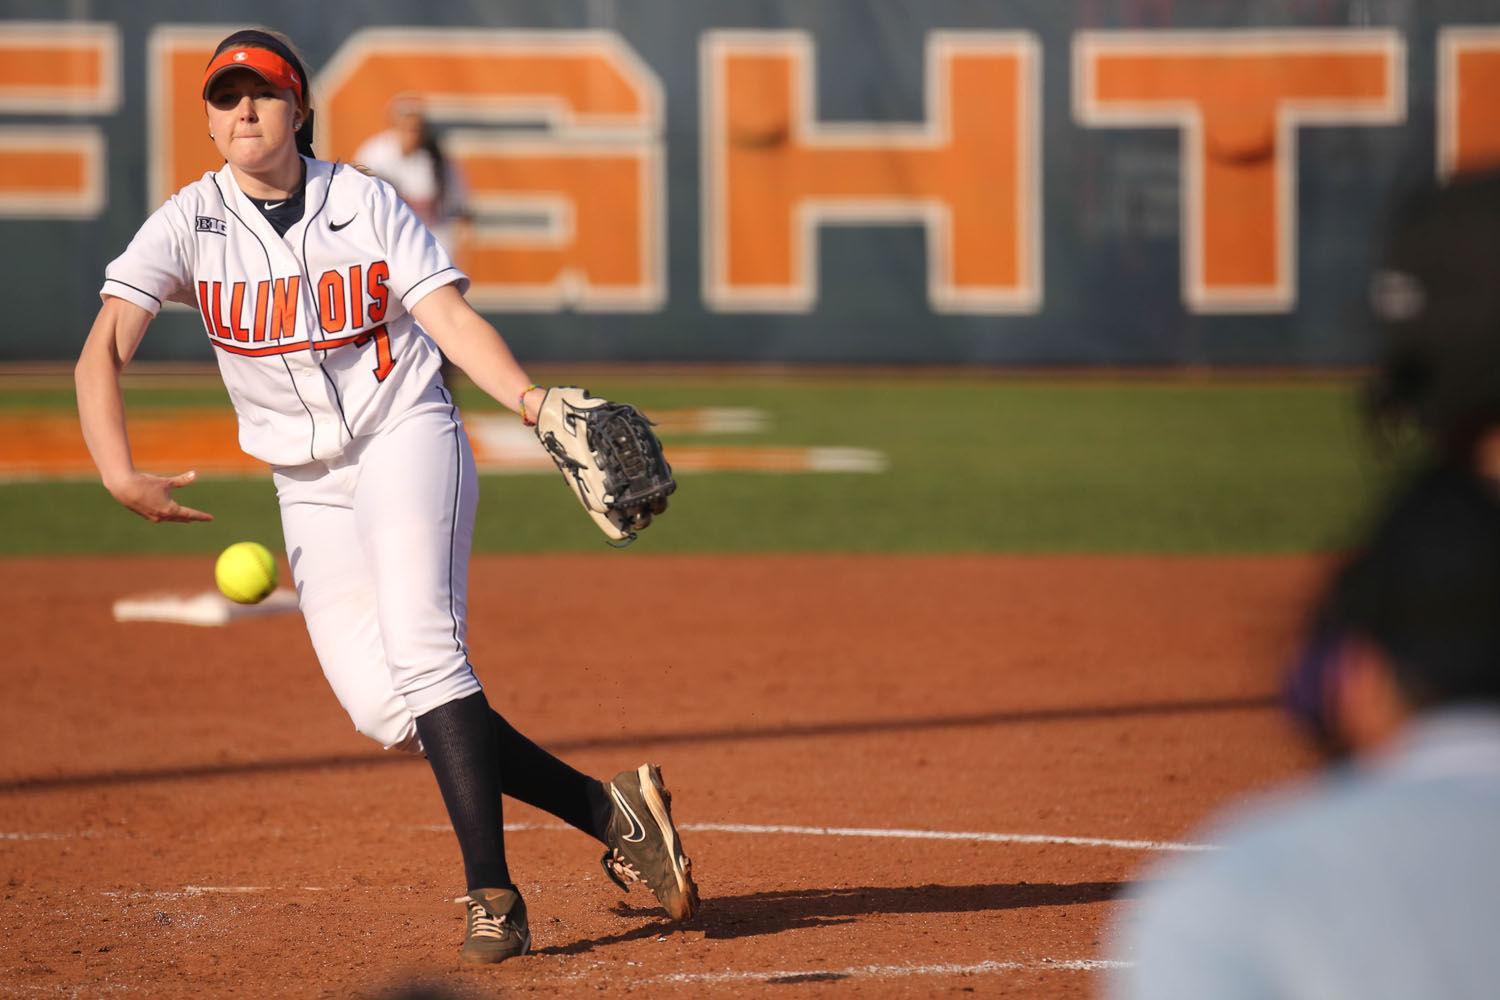 Illinois' Jade Vecvanags pitches during the game against Northwestern on April 22, 2014. Vecvanags' best outing of the season was cut short due to a travel curfew.